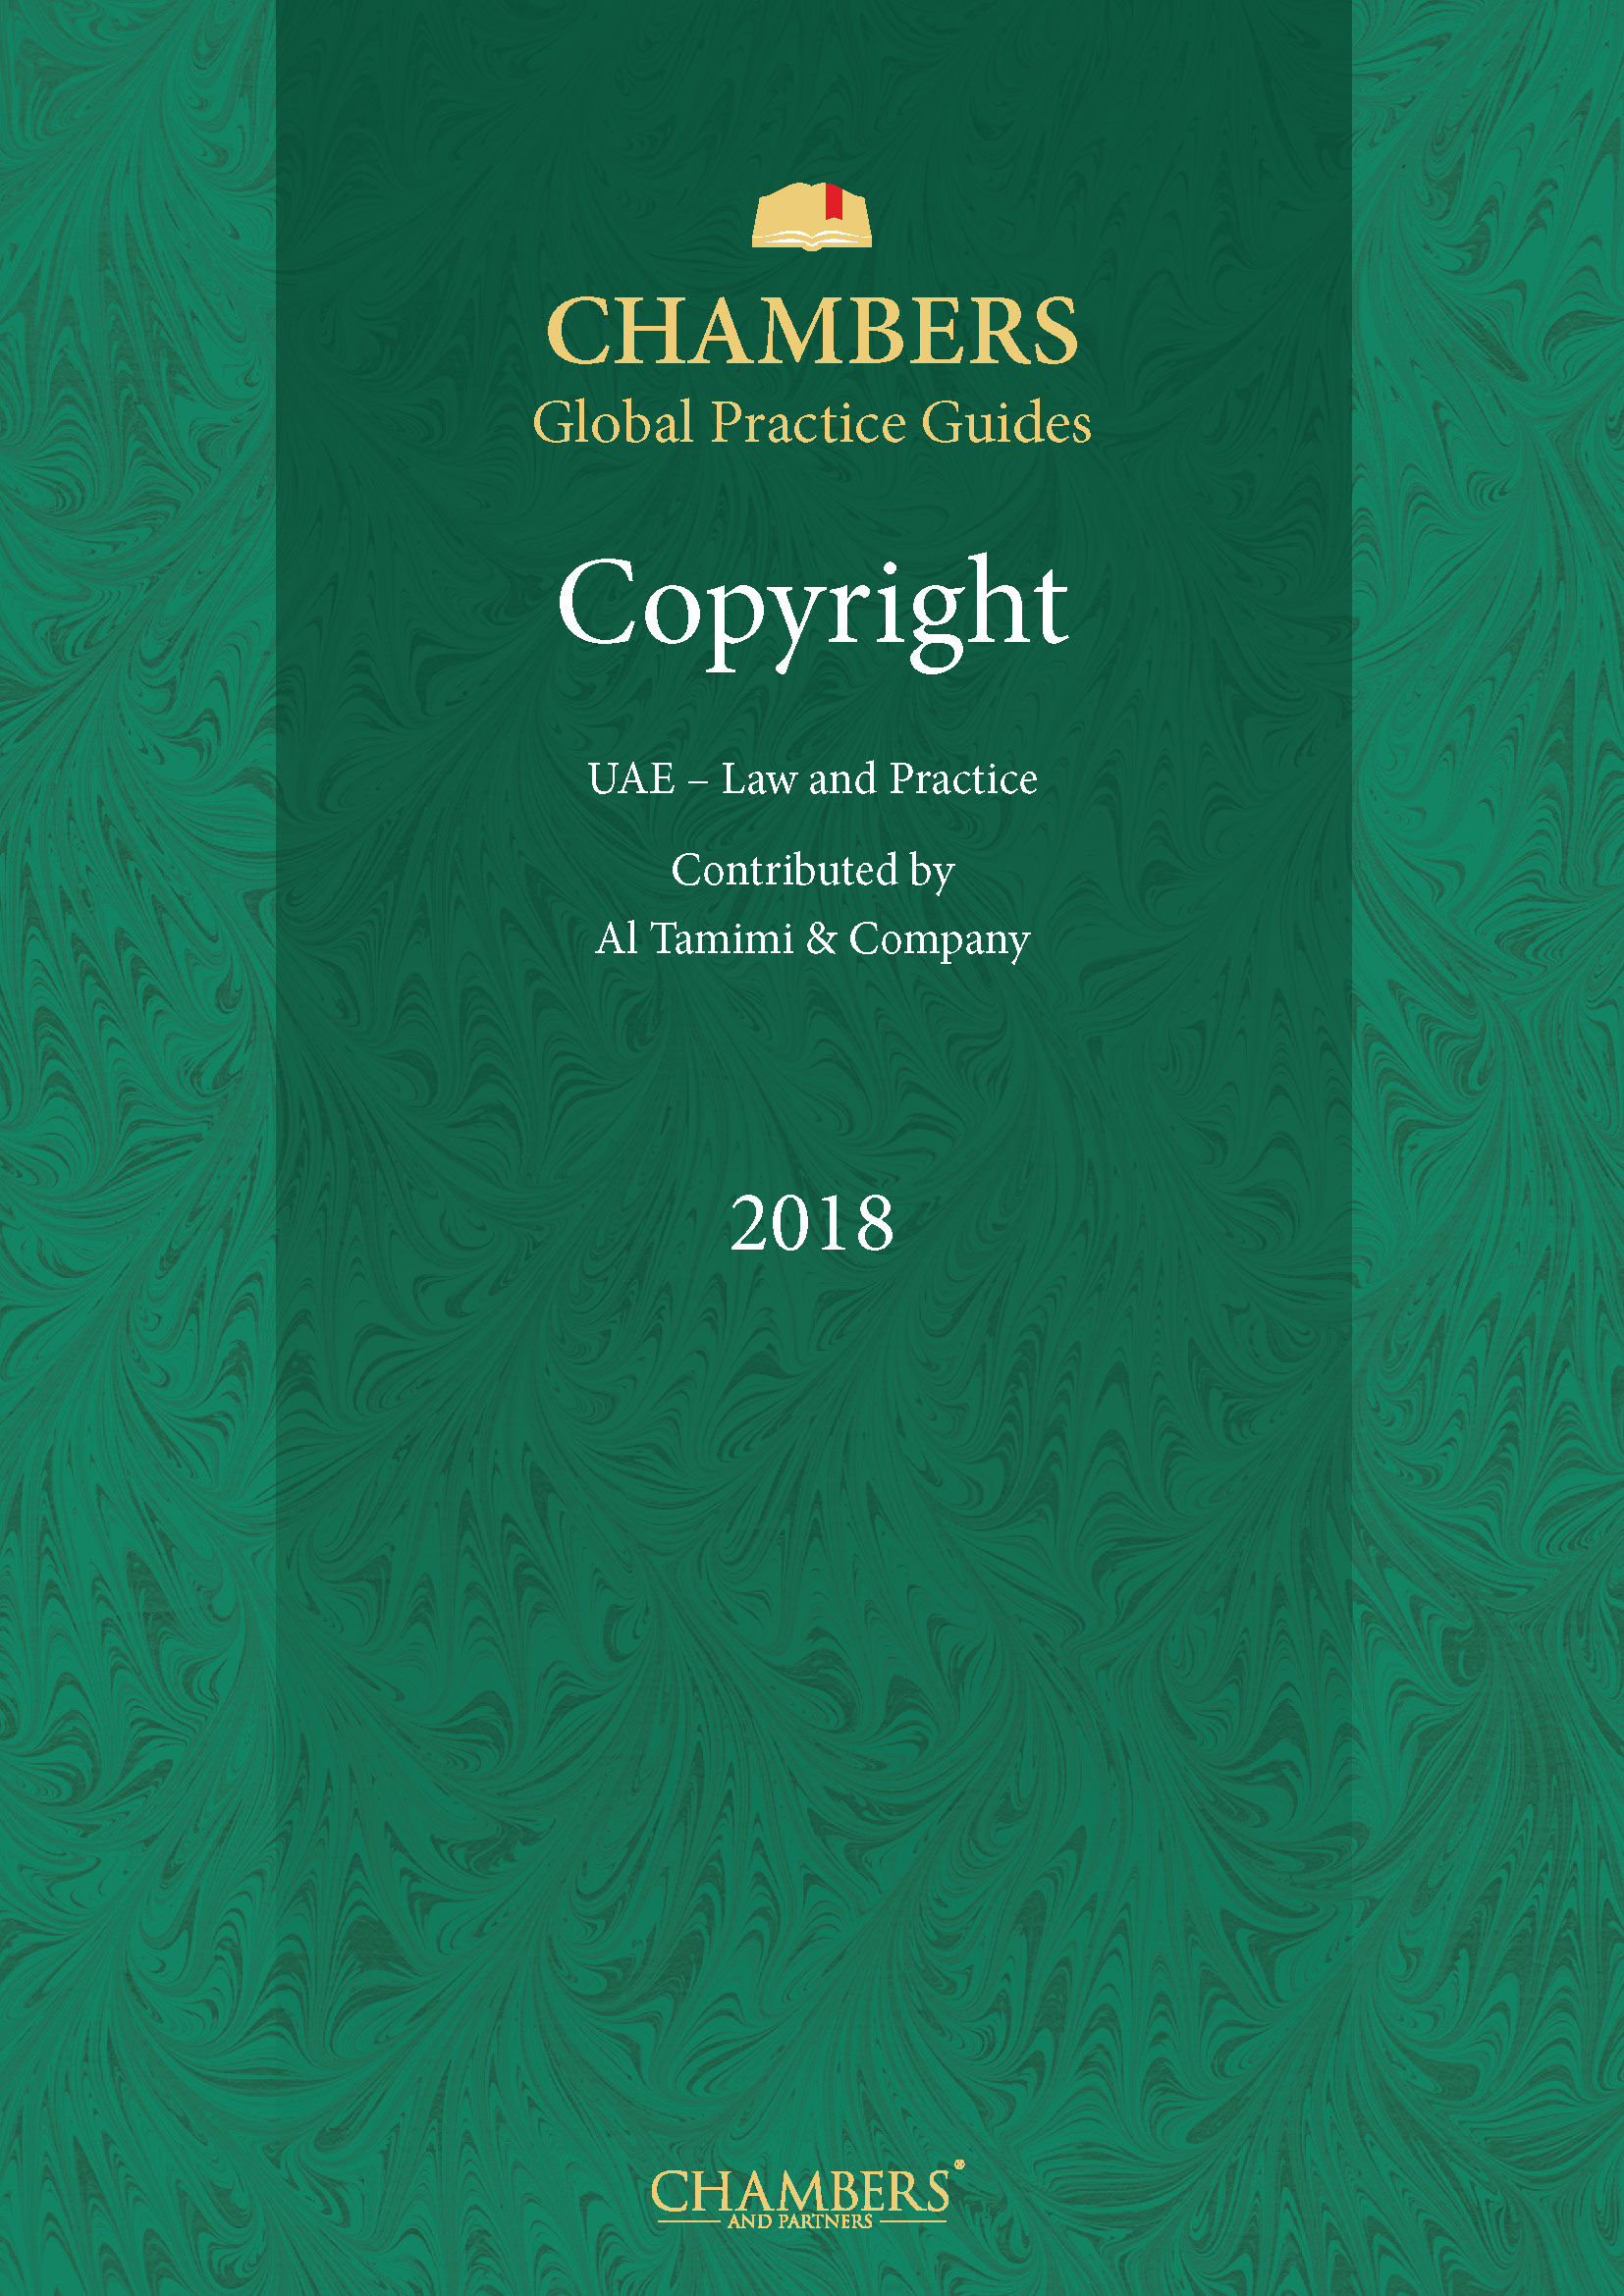 Chambers Global Practice Guides – Copyright 2018